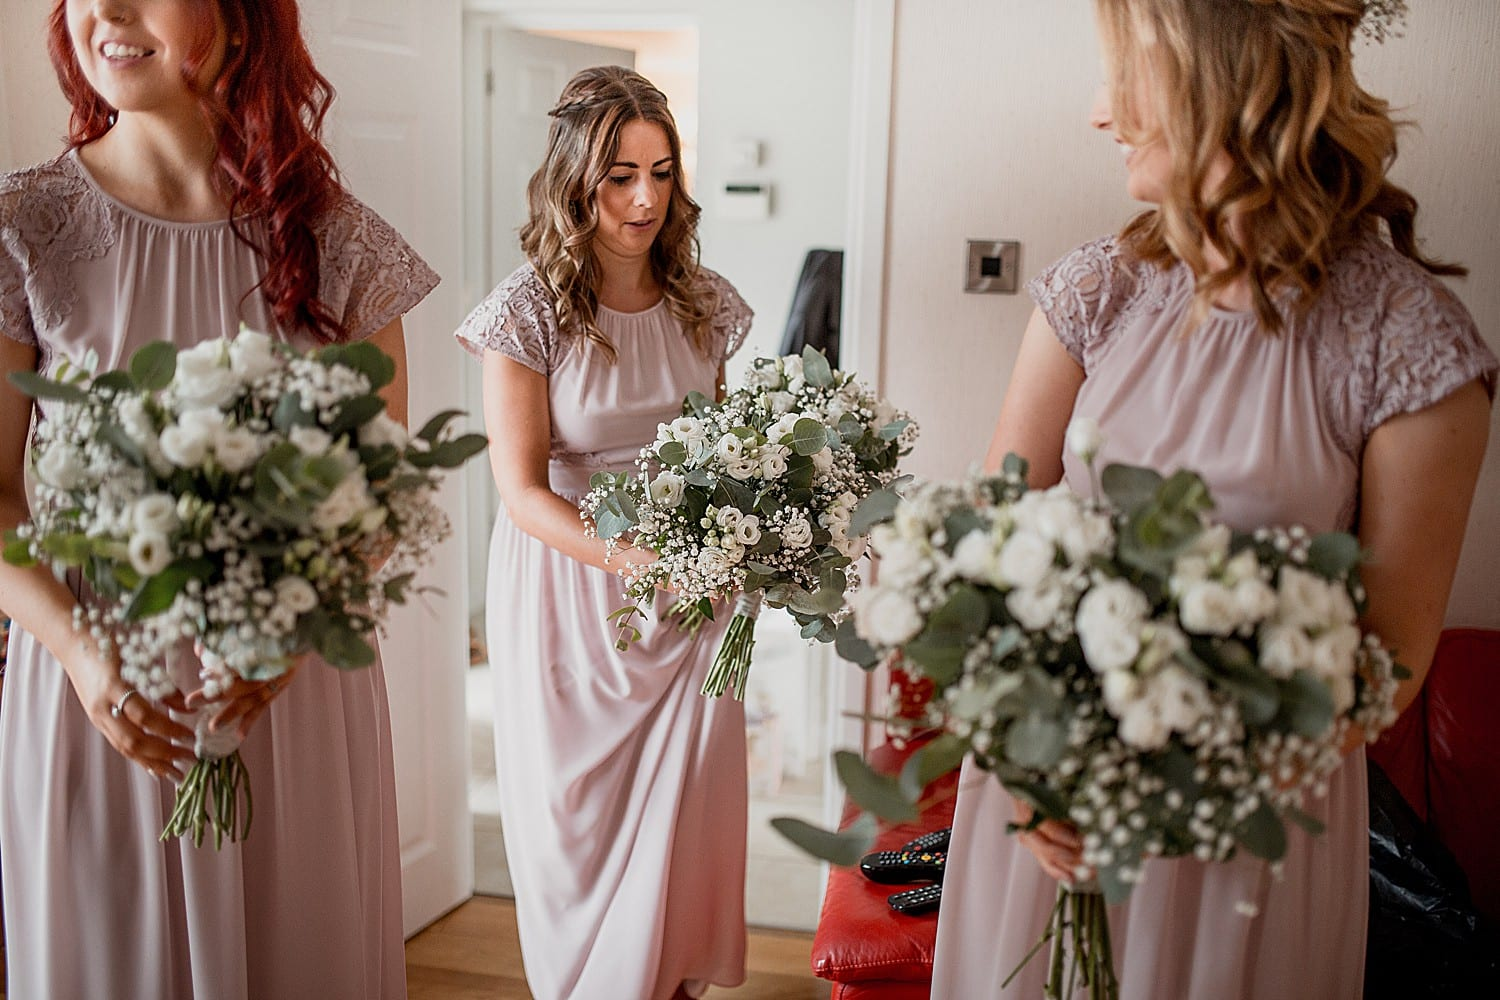 Bridesmaids and bouquets at Staffordshire wedding